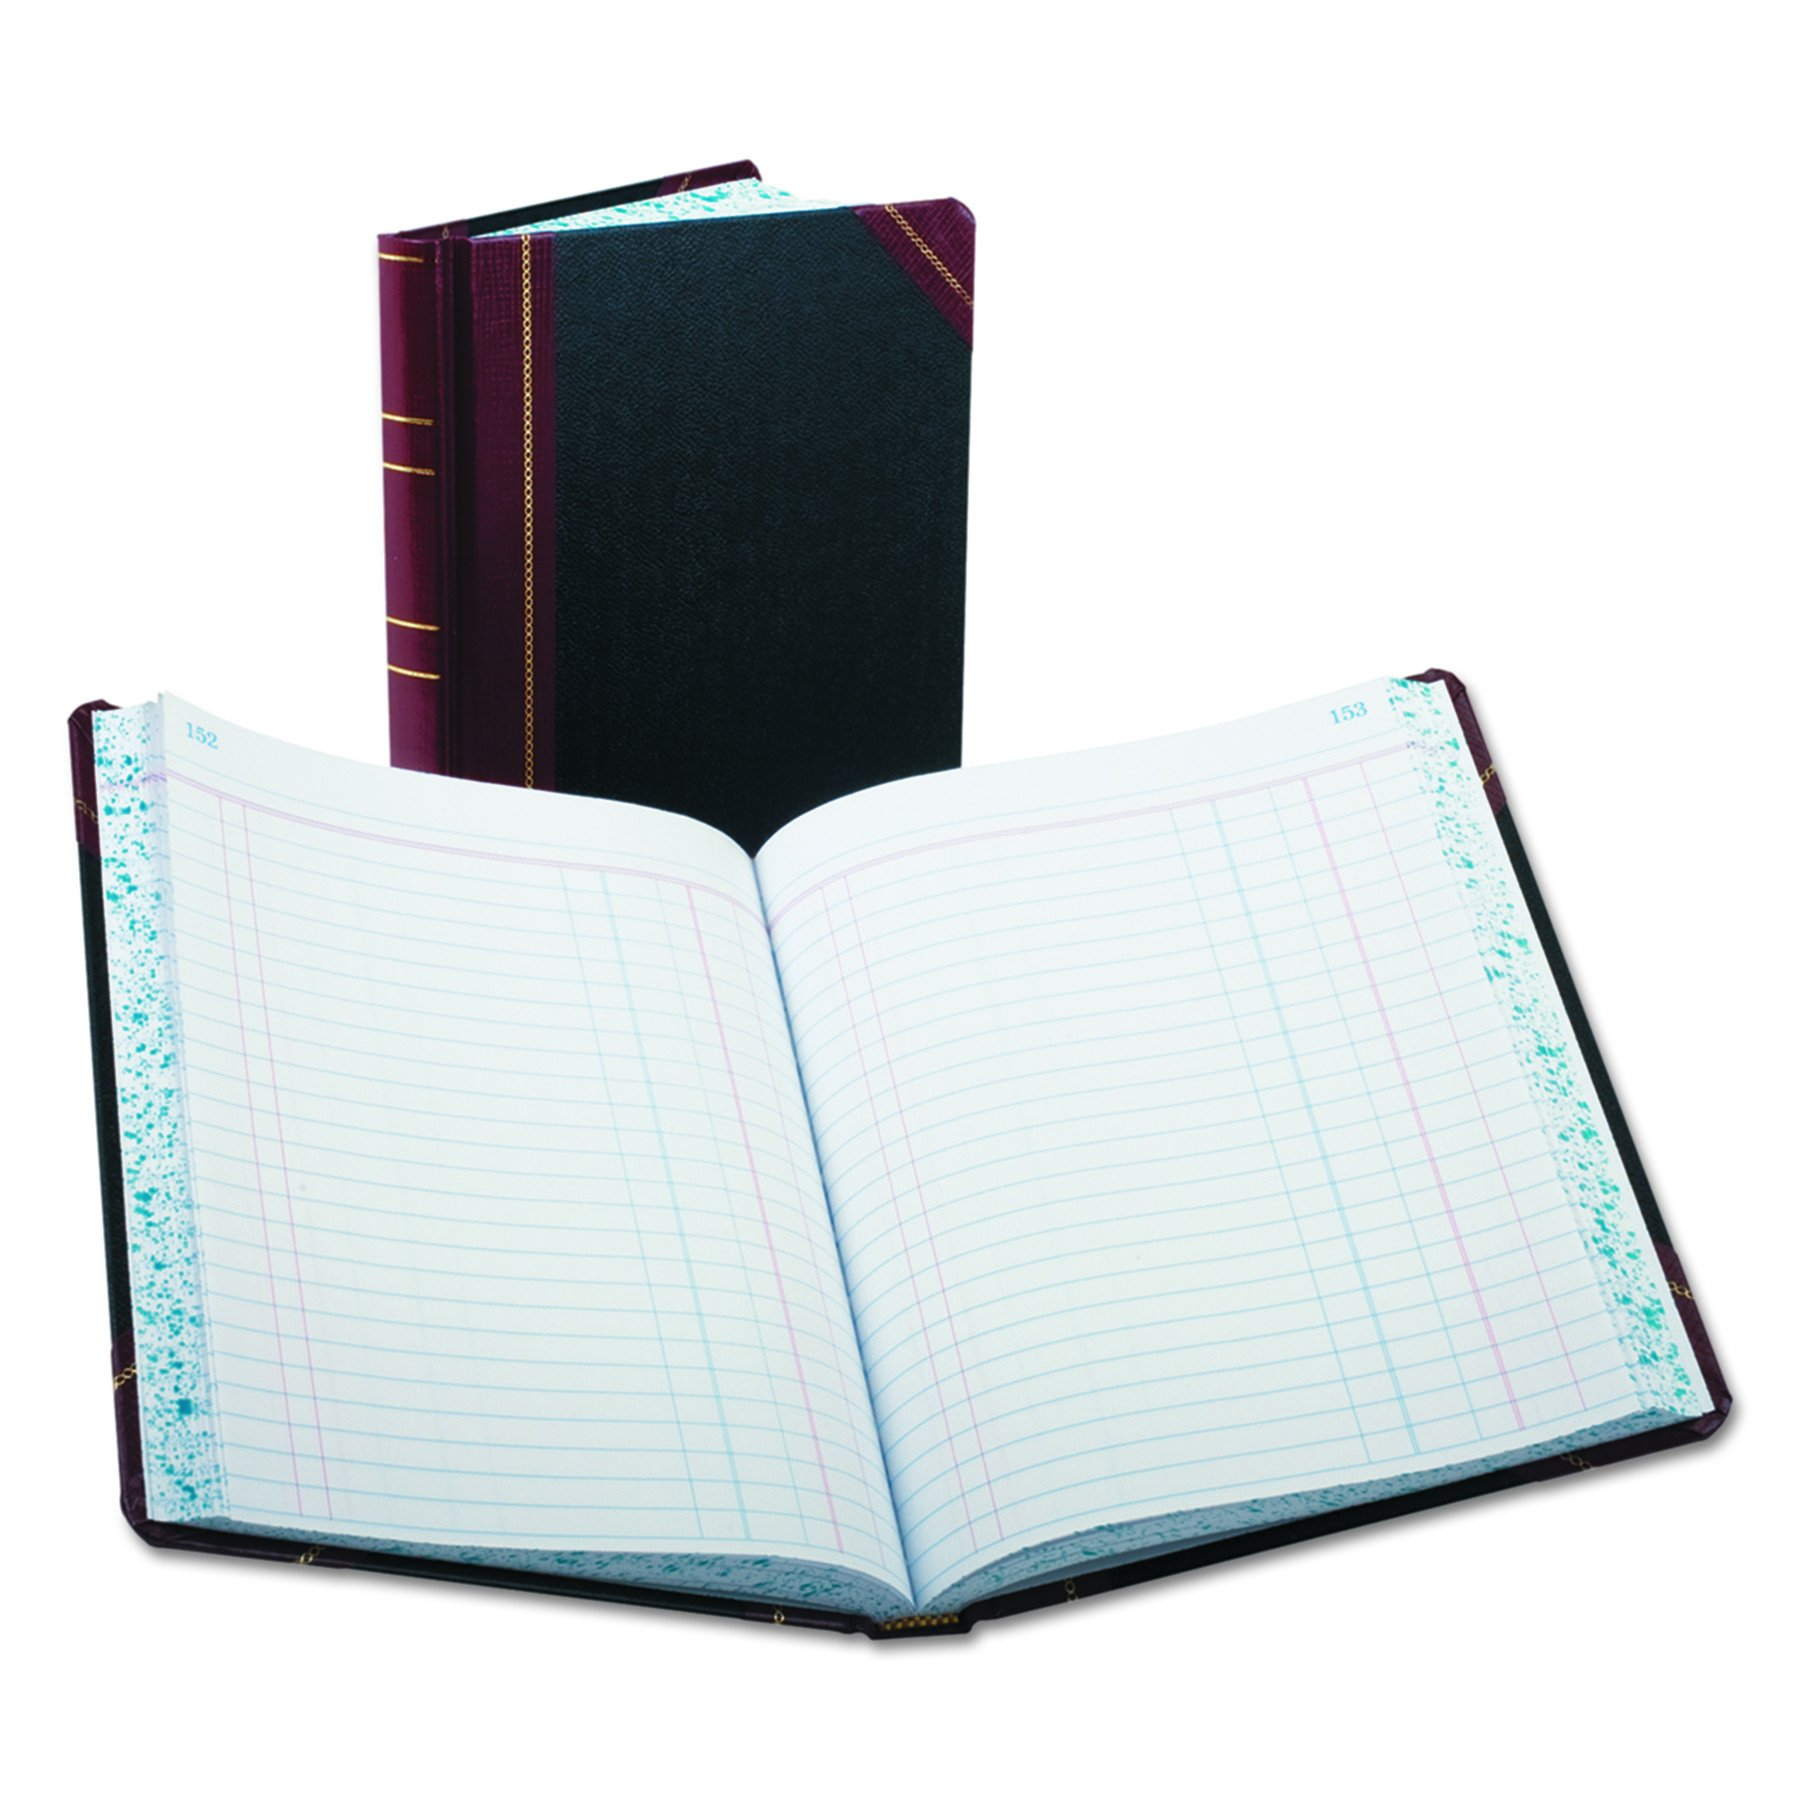 Boorum & Pease Record/Account Book, Black/Red Cover, Journal Rule, 9-5/8 x 7-5/8, 300 Pages (38-300-J)